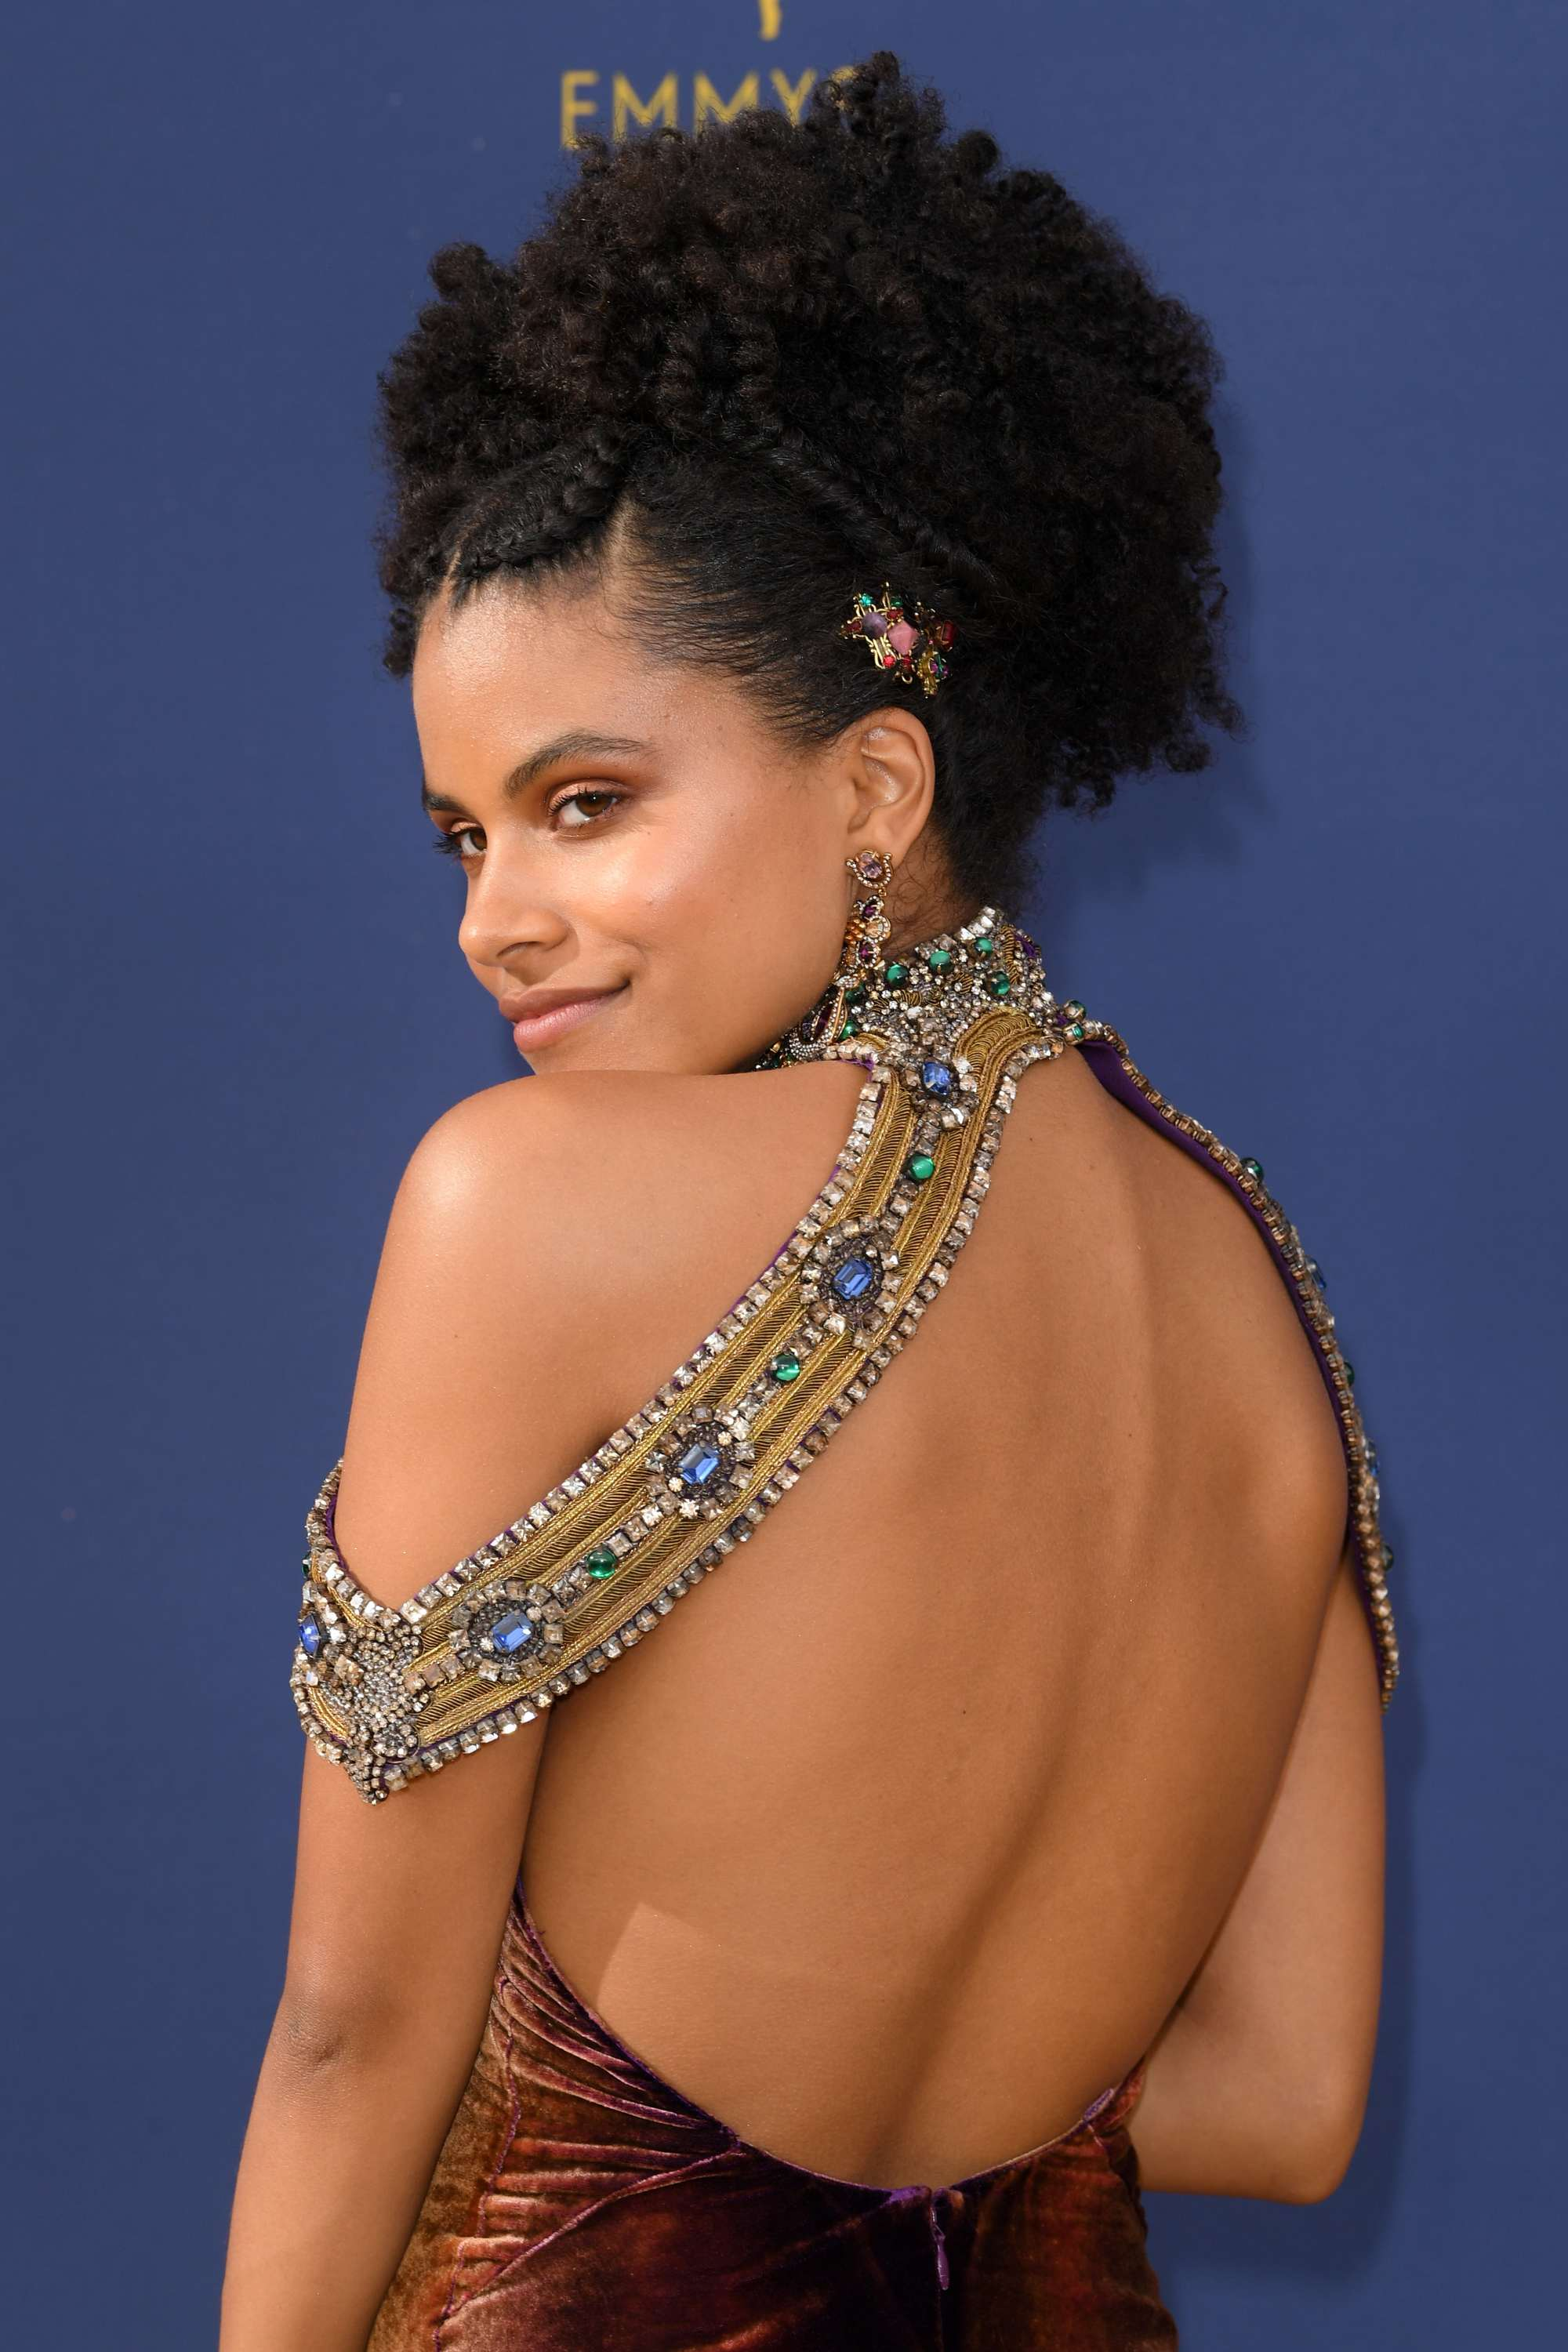 Emmy Awards 2018: Close up shot of Zazie Beetz with a glamorous high afro bun with braid detailing and an ornamental hair clip, wearing a matching bejewelled dress on the red carpet